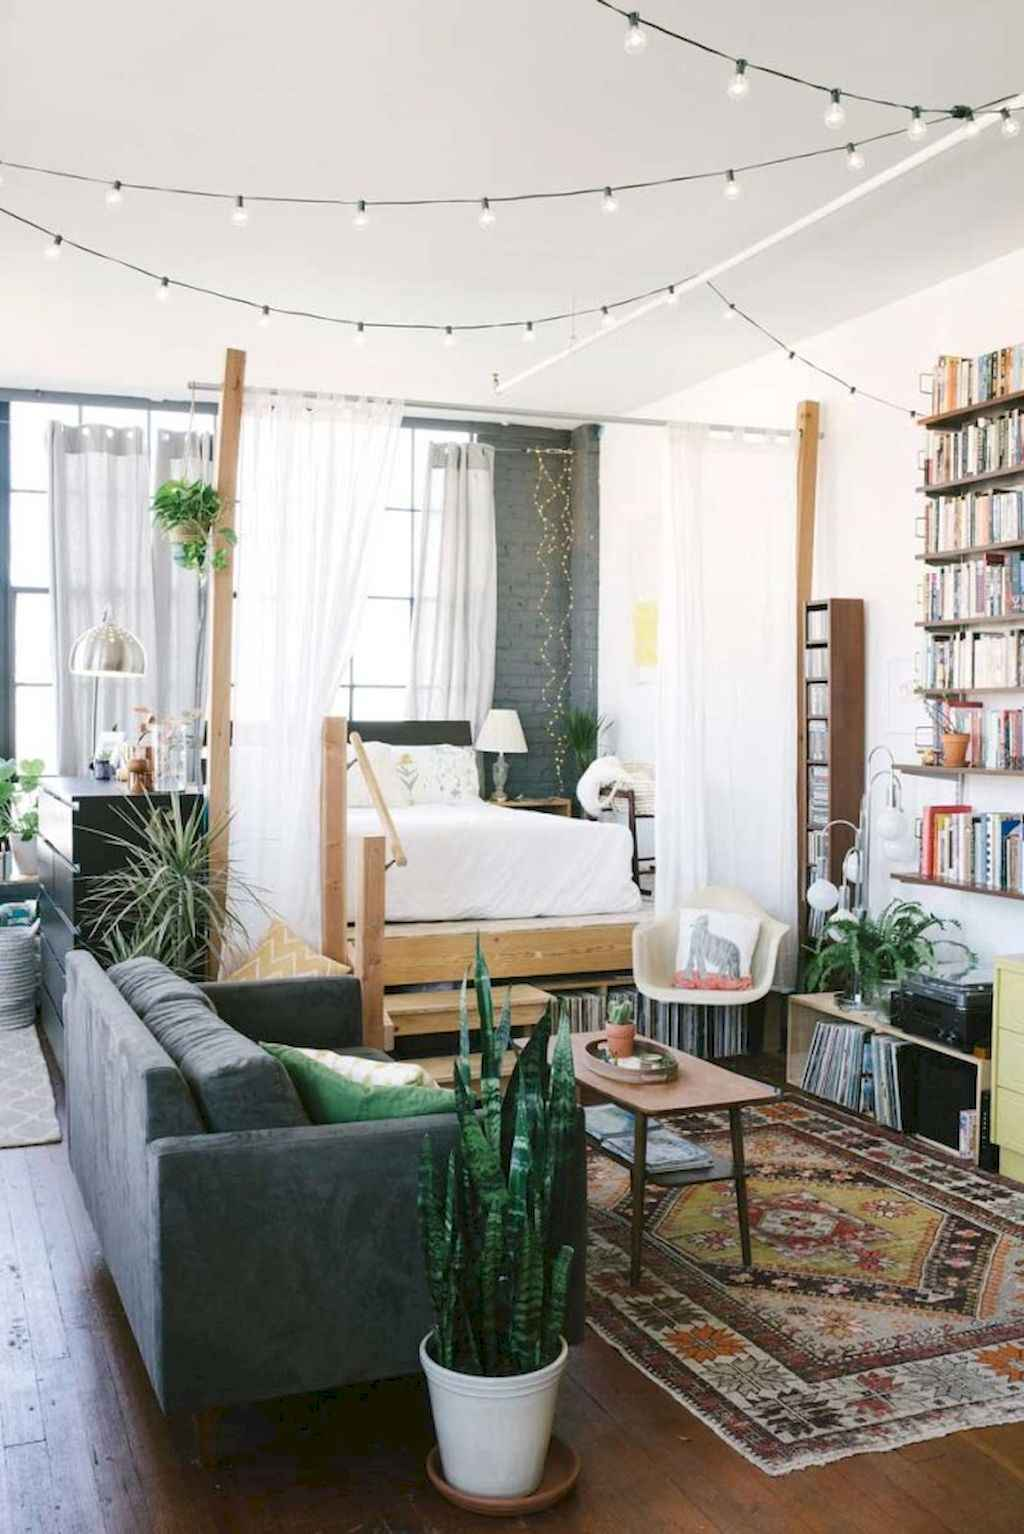 Cool small apartment decorating ideas on a budget (46)